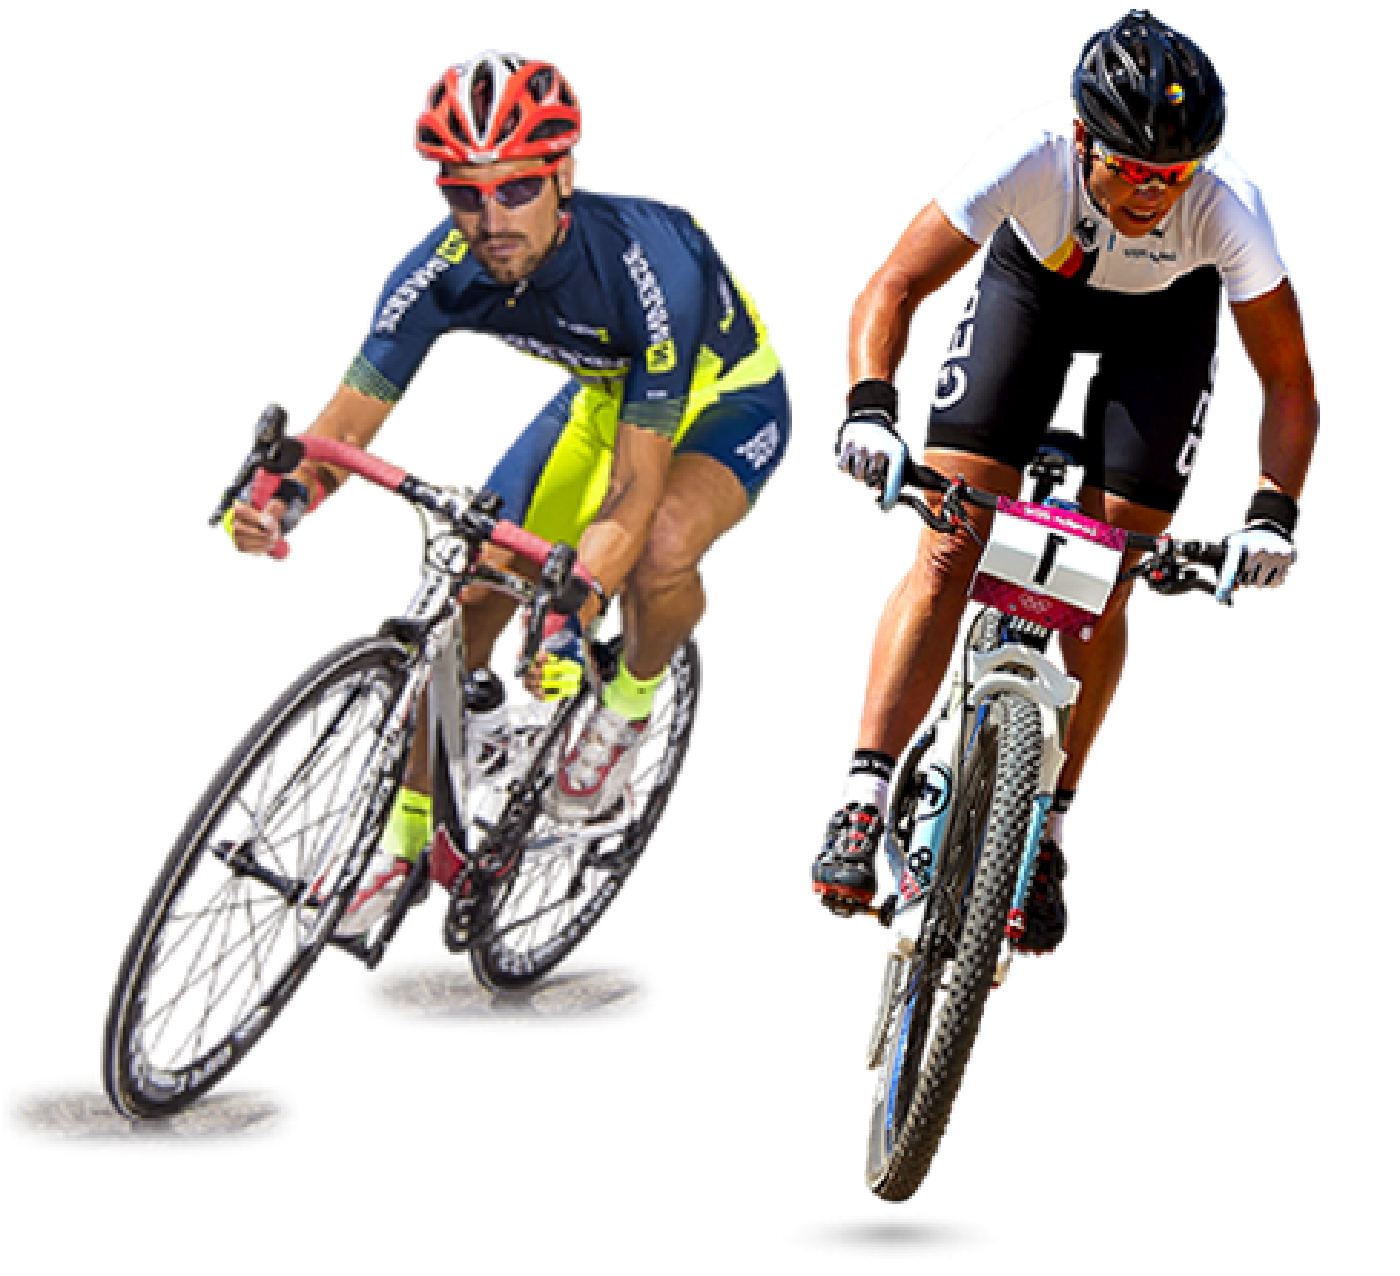 PNG Ciclismo - 136607